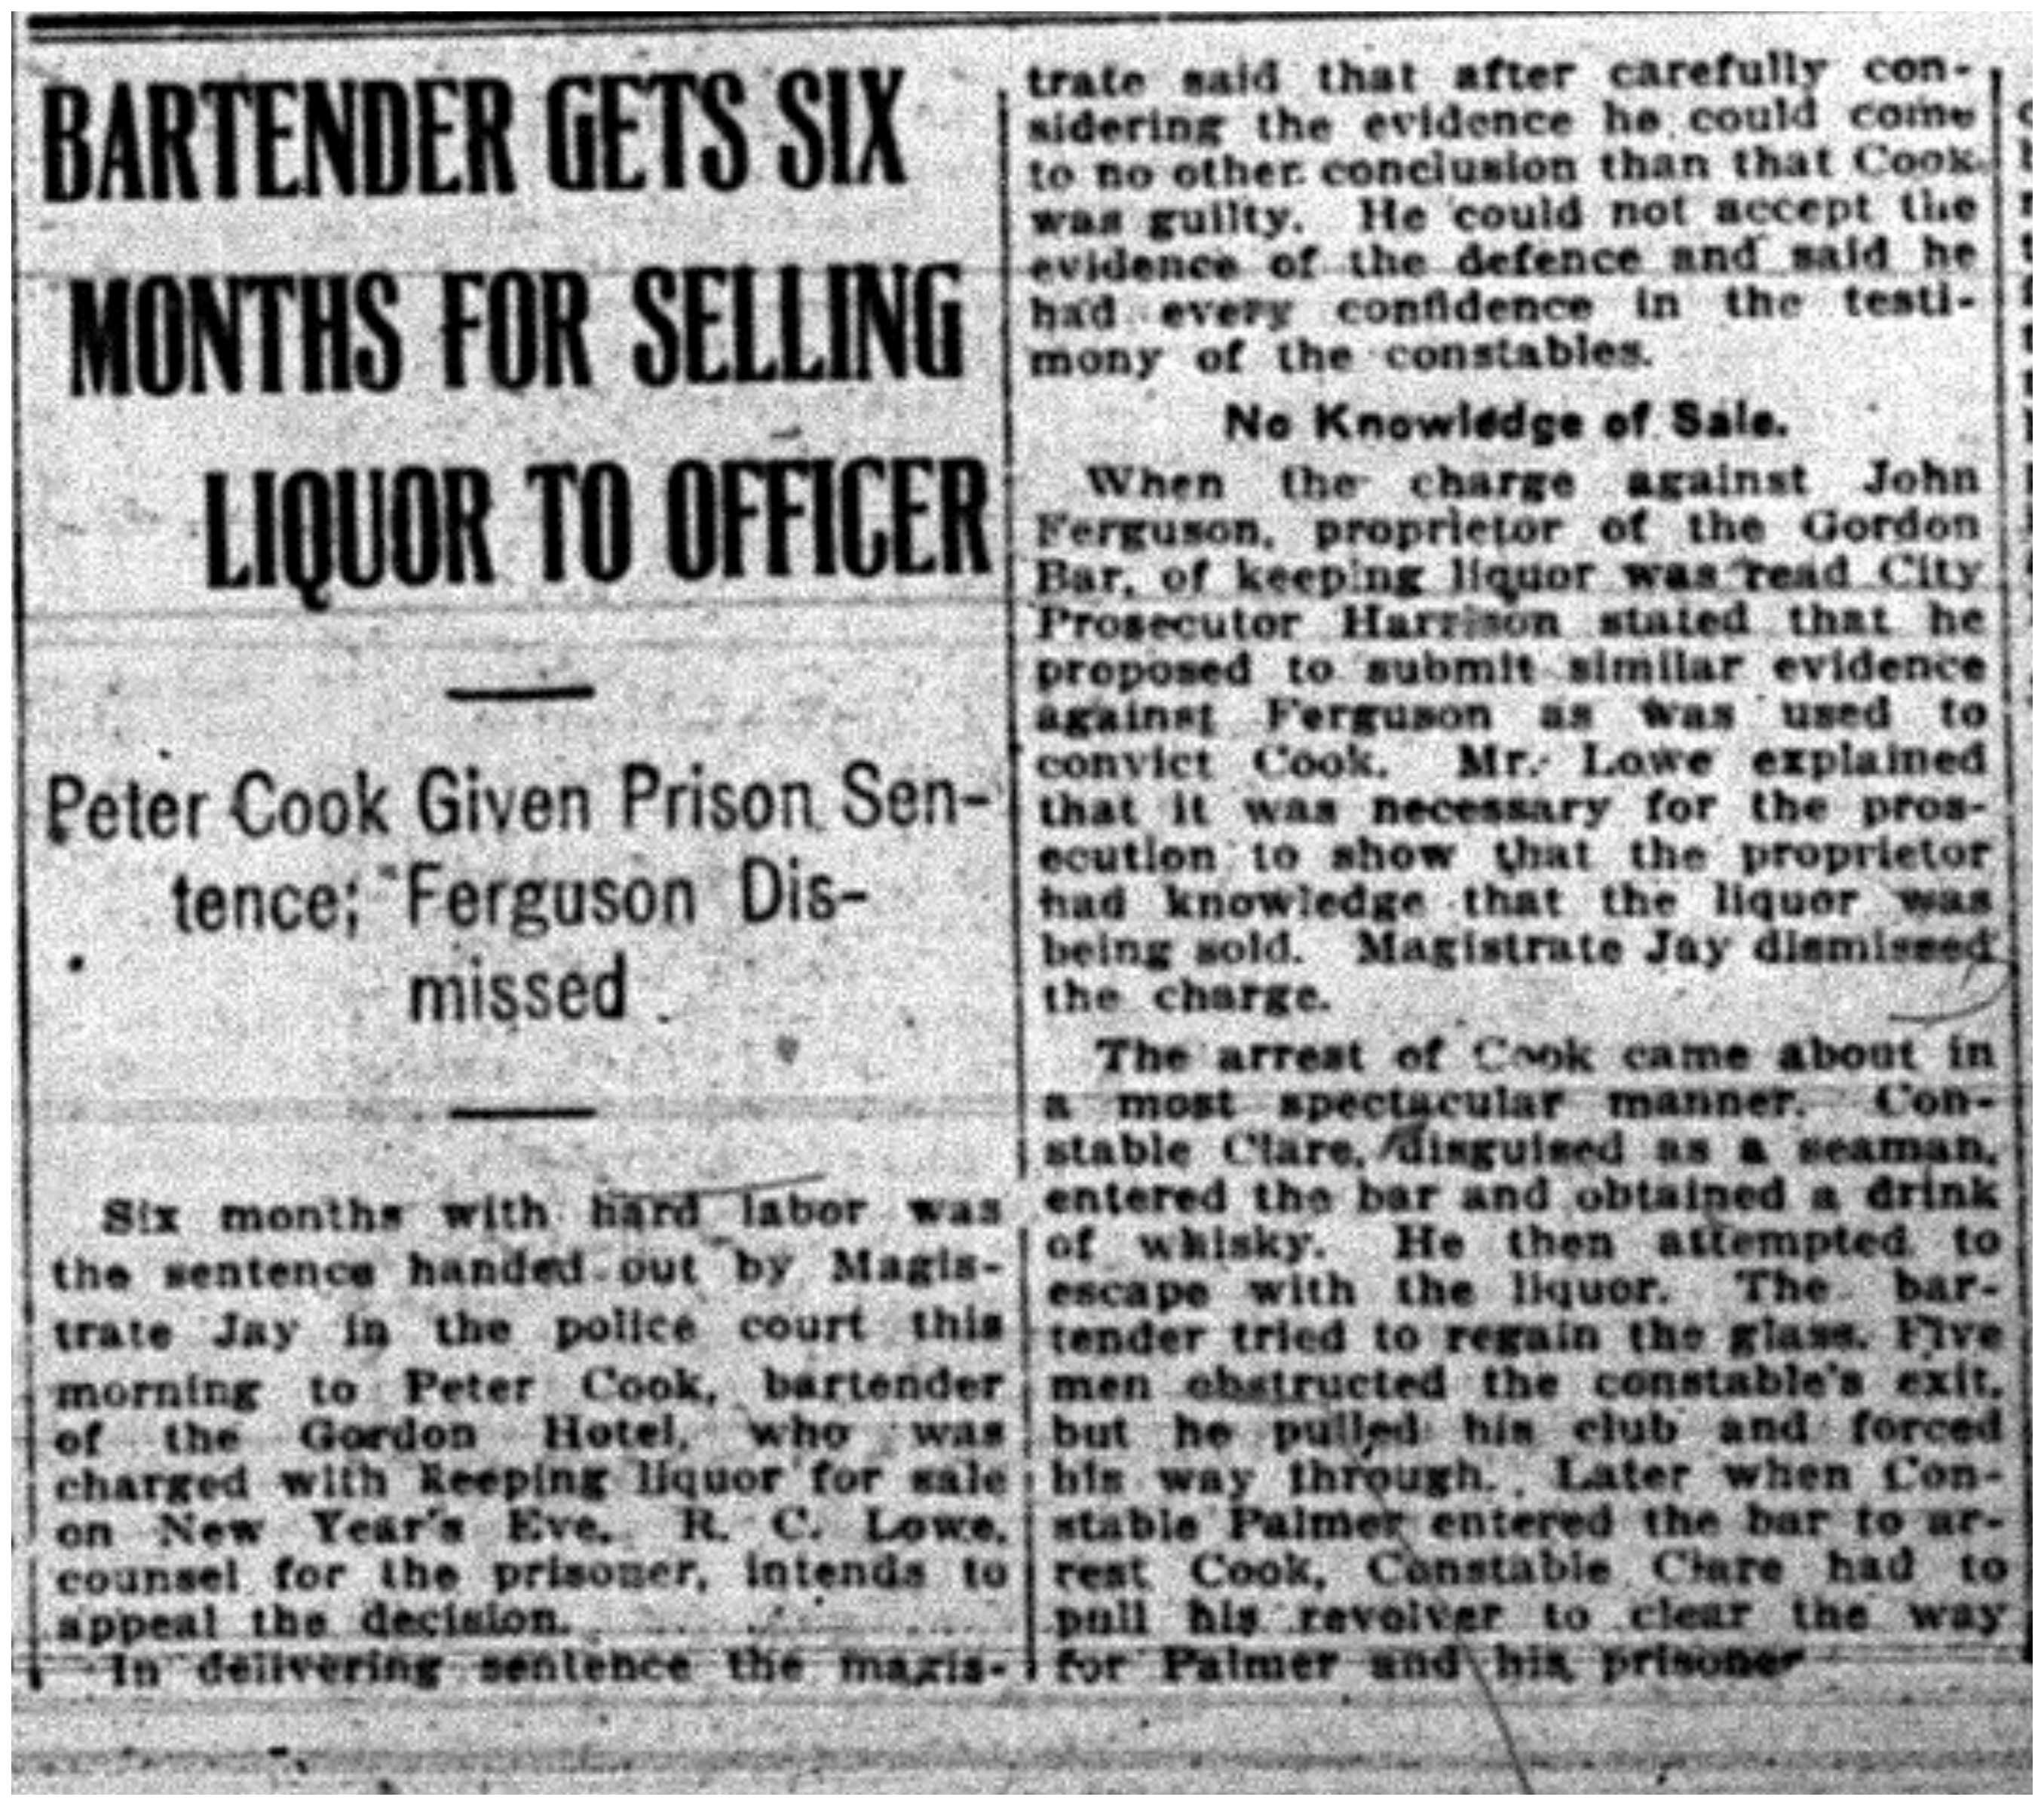 """Bartender Gets Six Months For Selling Liquor to Officer"""